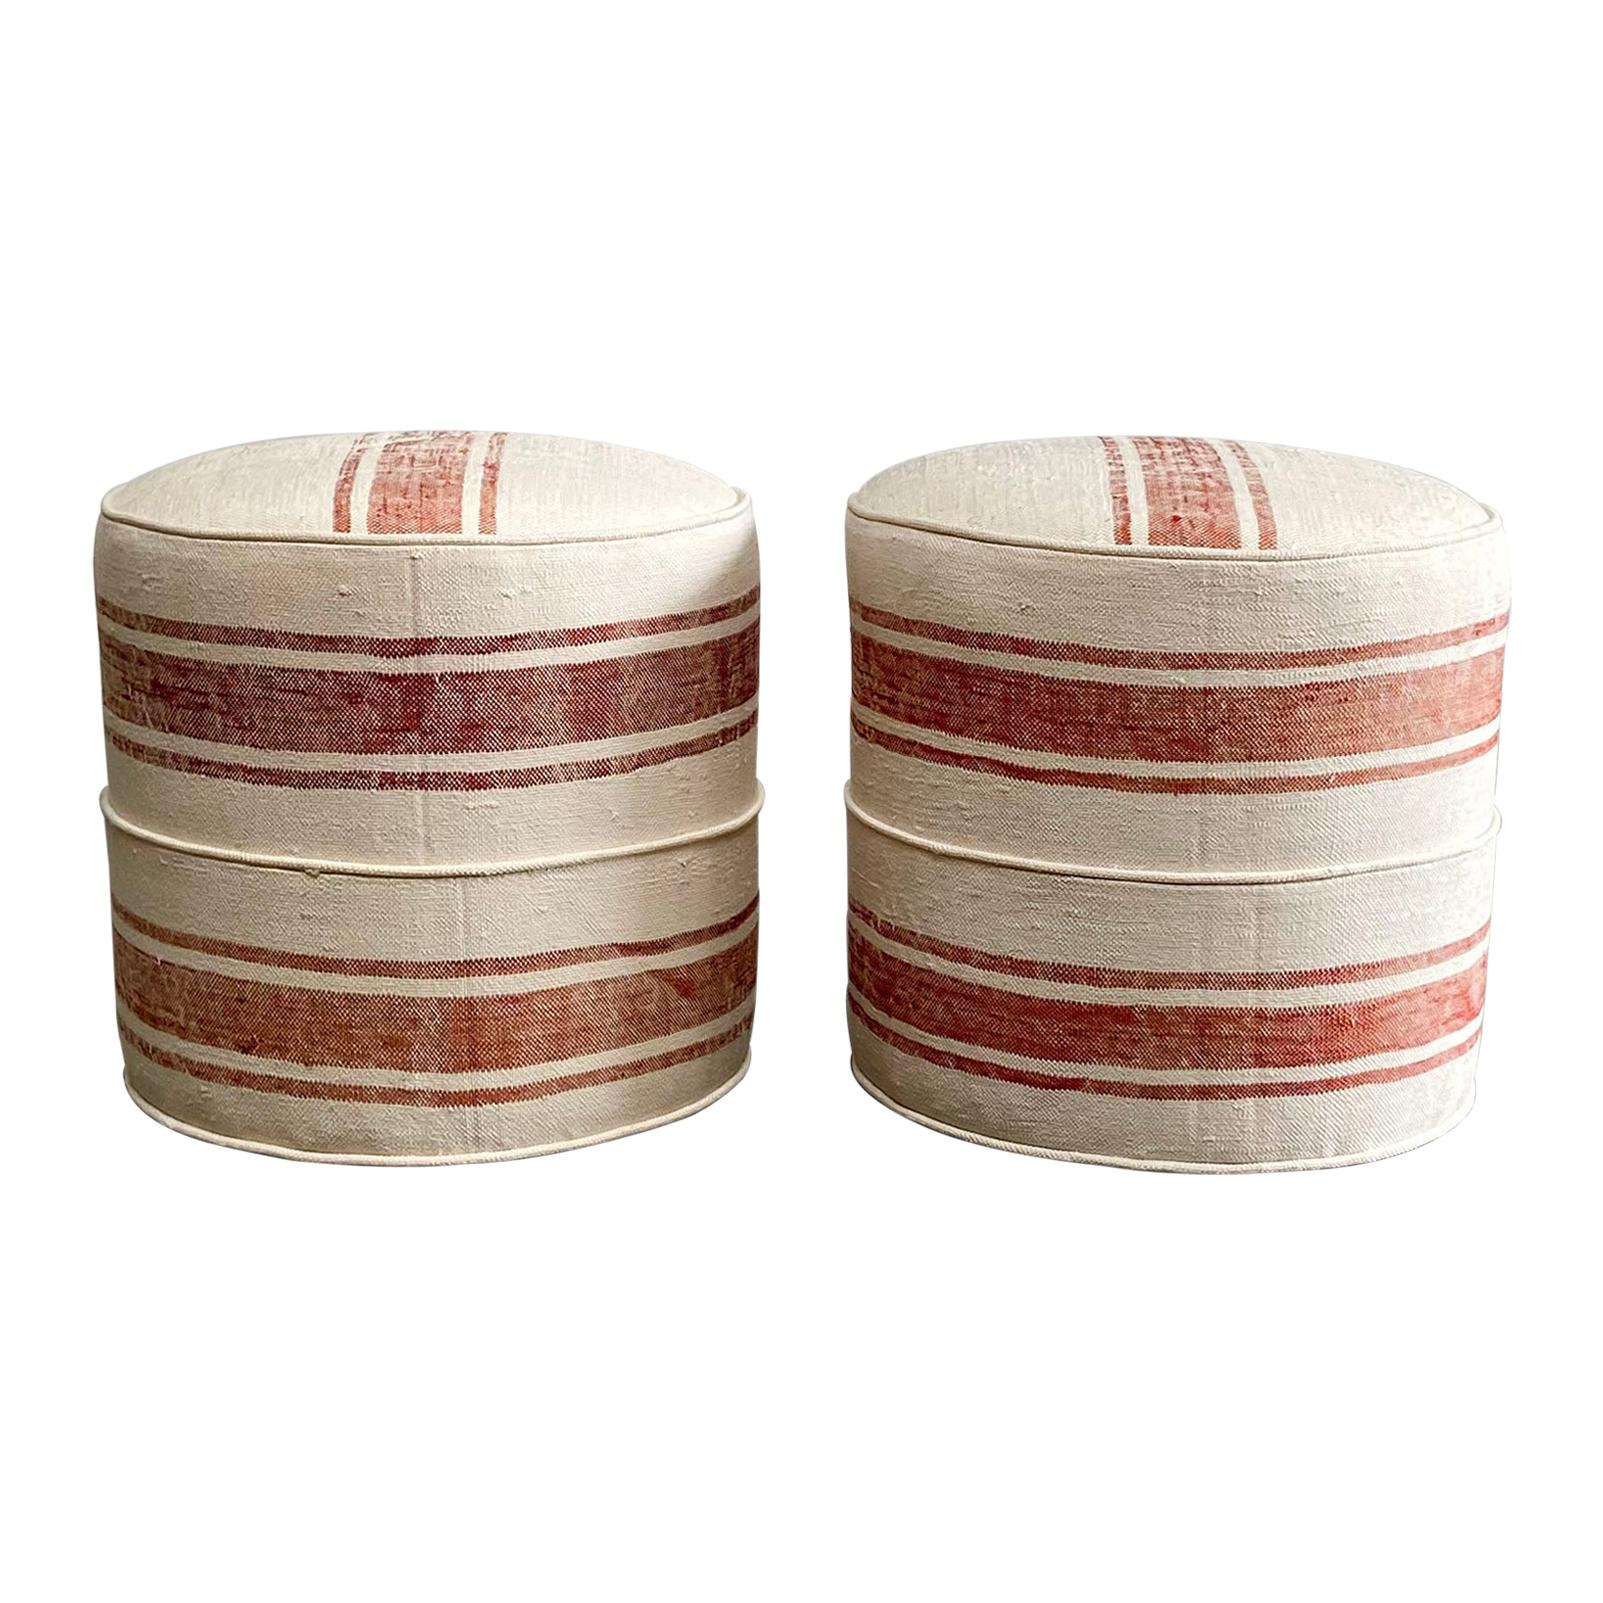 Custom Made Round Ottomans from a Woven Sabra Silk Rug